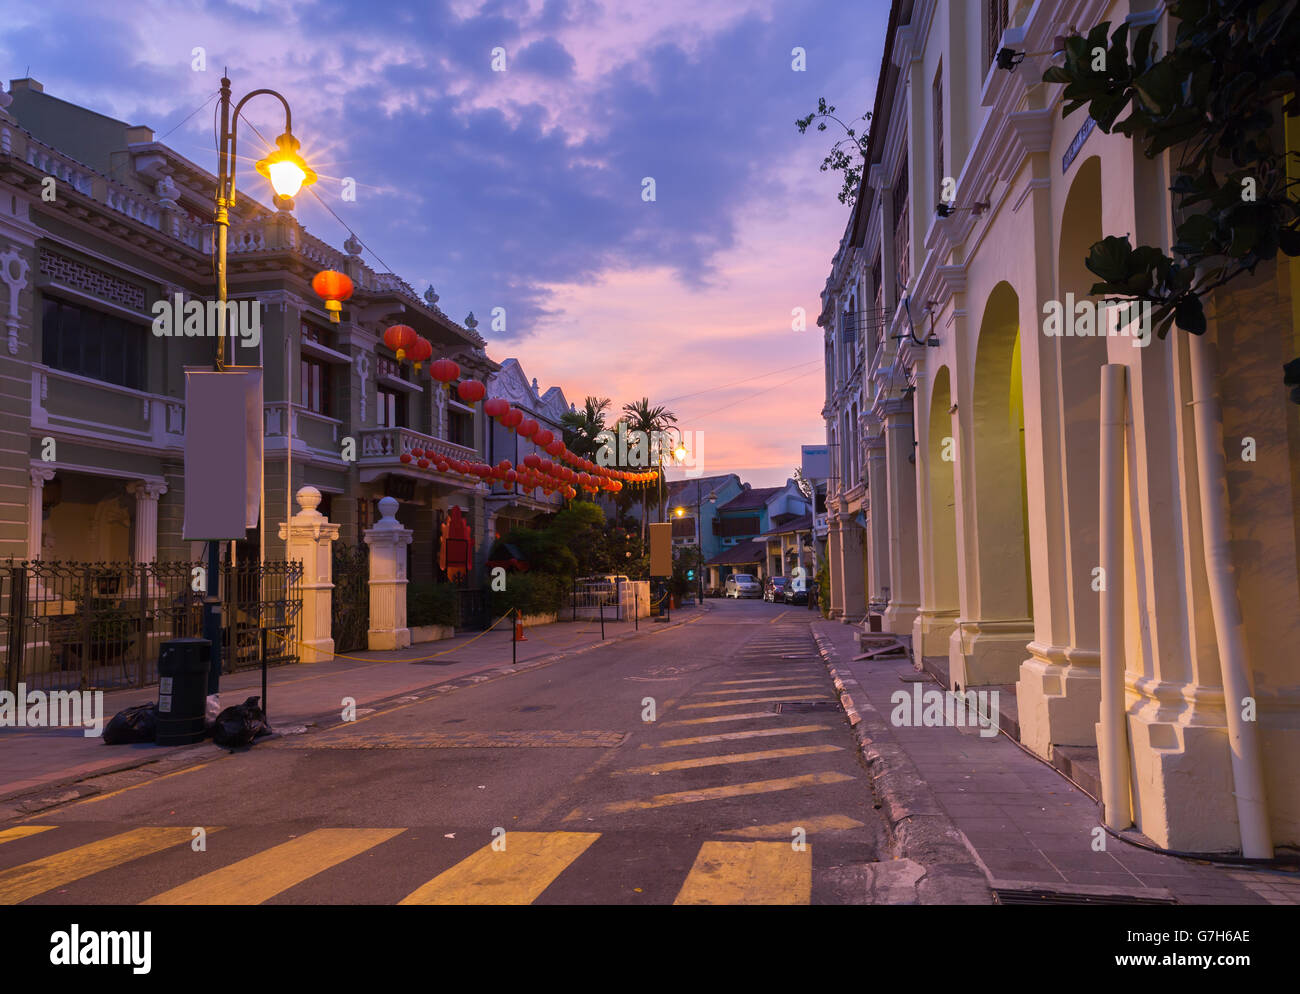 Dusk view of on Armenian Street and Yap Kongsi clan house, George Town, Penang, Malaysia. - Stock Image